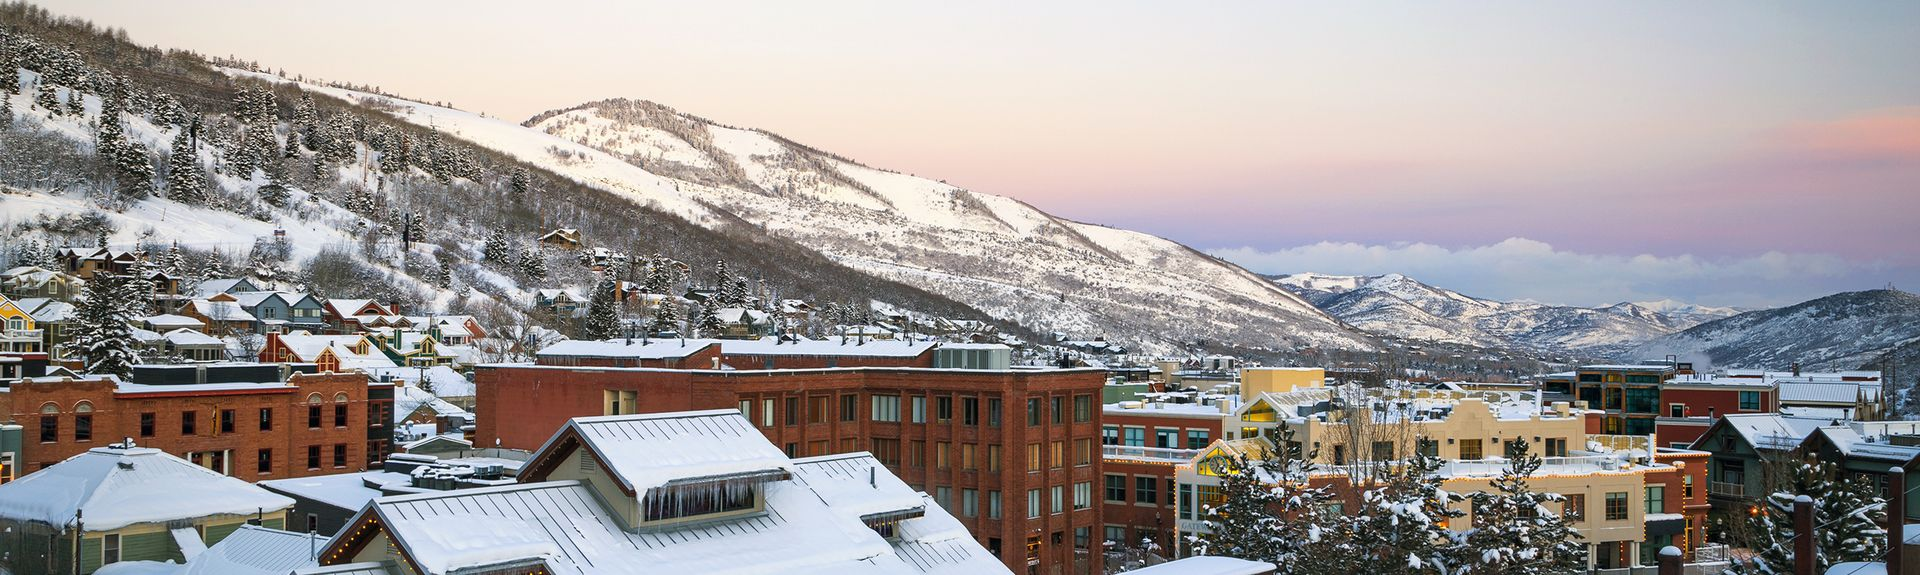 Park City Mountain Resort, Park City, Utah, États-Unis d'Amérique